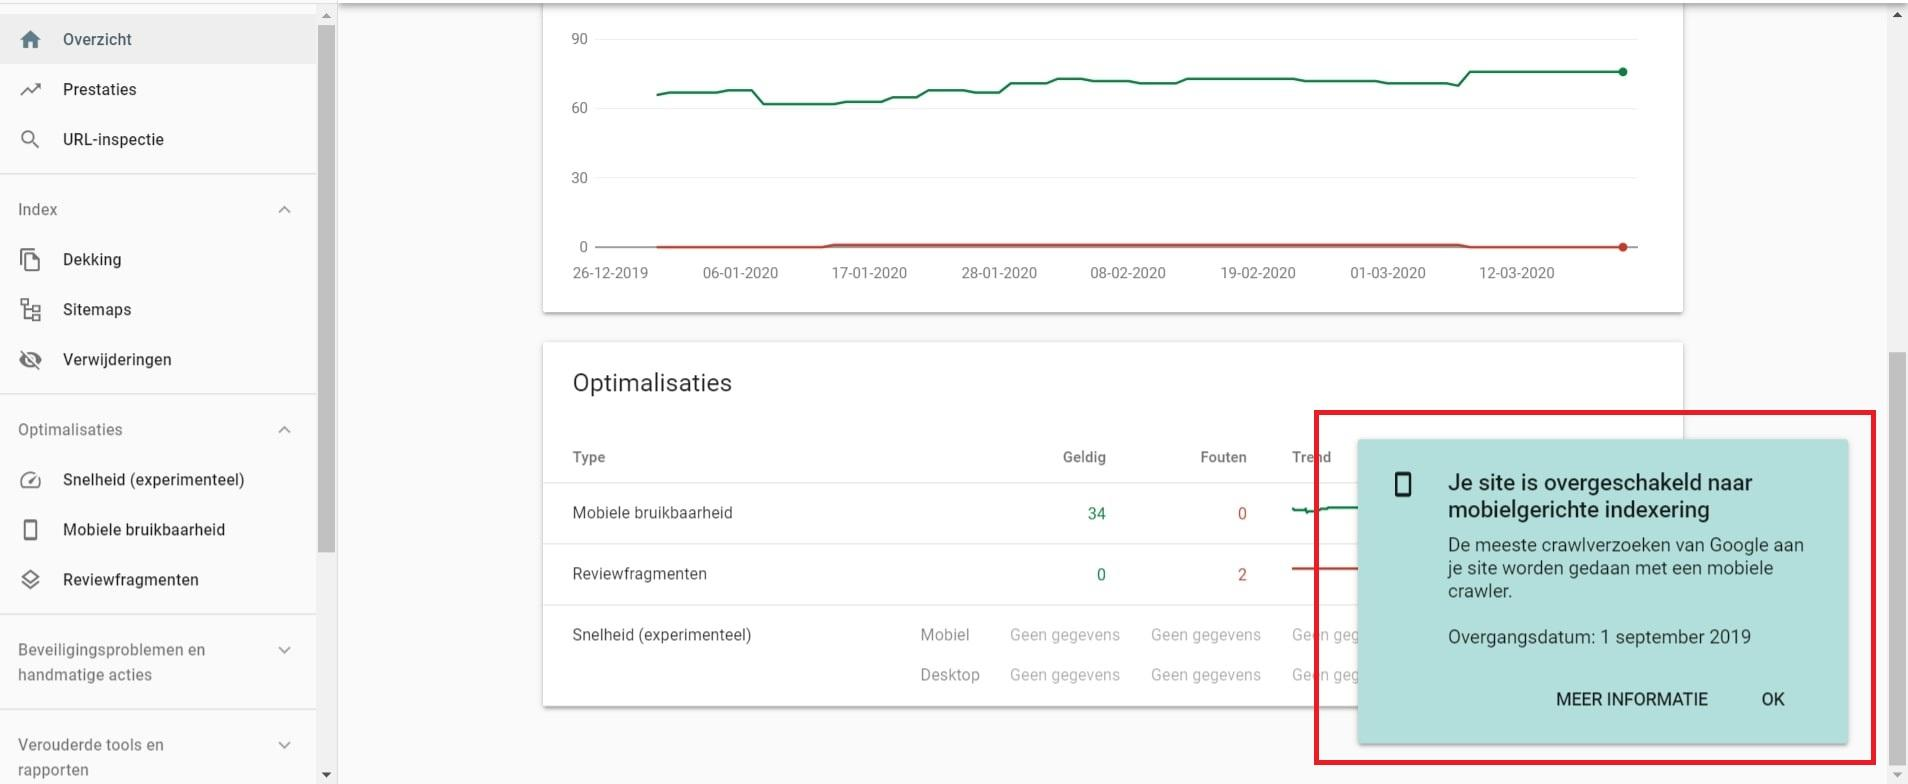 Melding Google Search Console overschakeling naar mobile-first indexatie